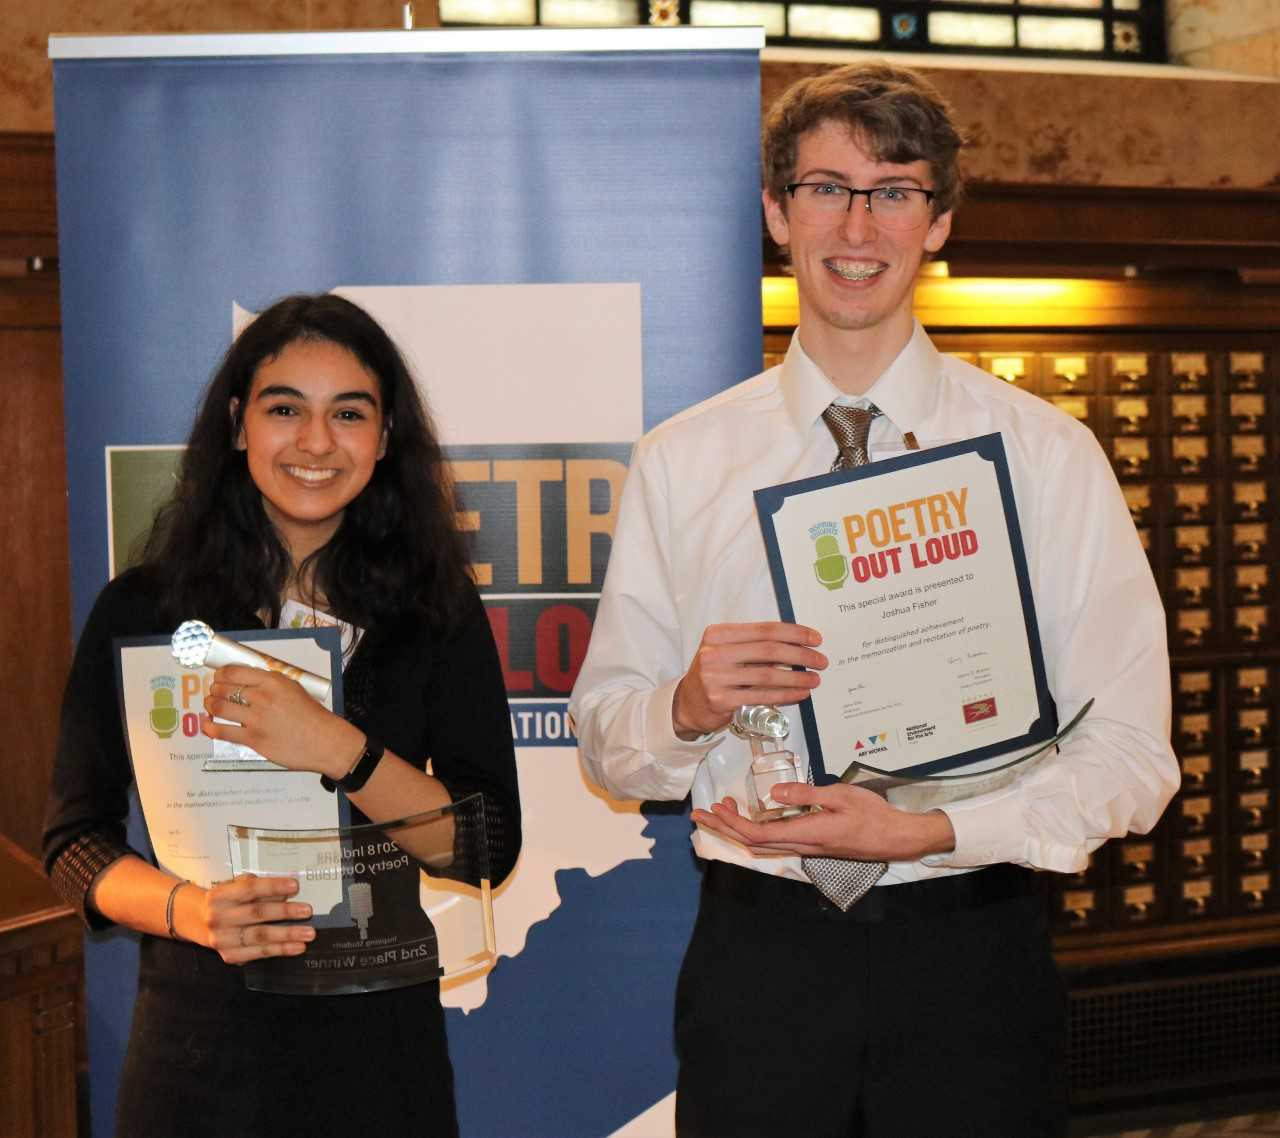 Warsaw Teen Qualifies For Poetry Out Loud Nationals